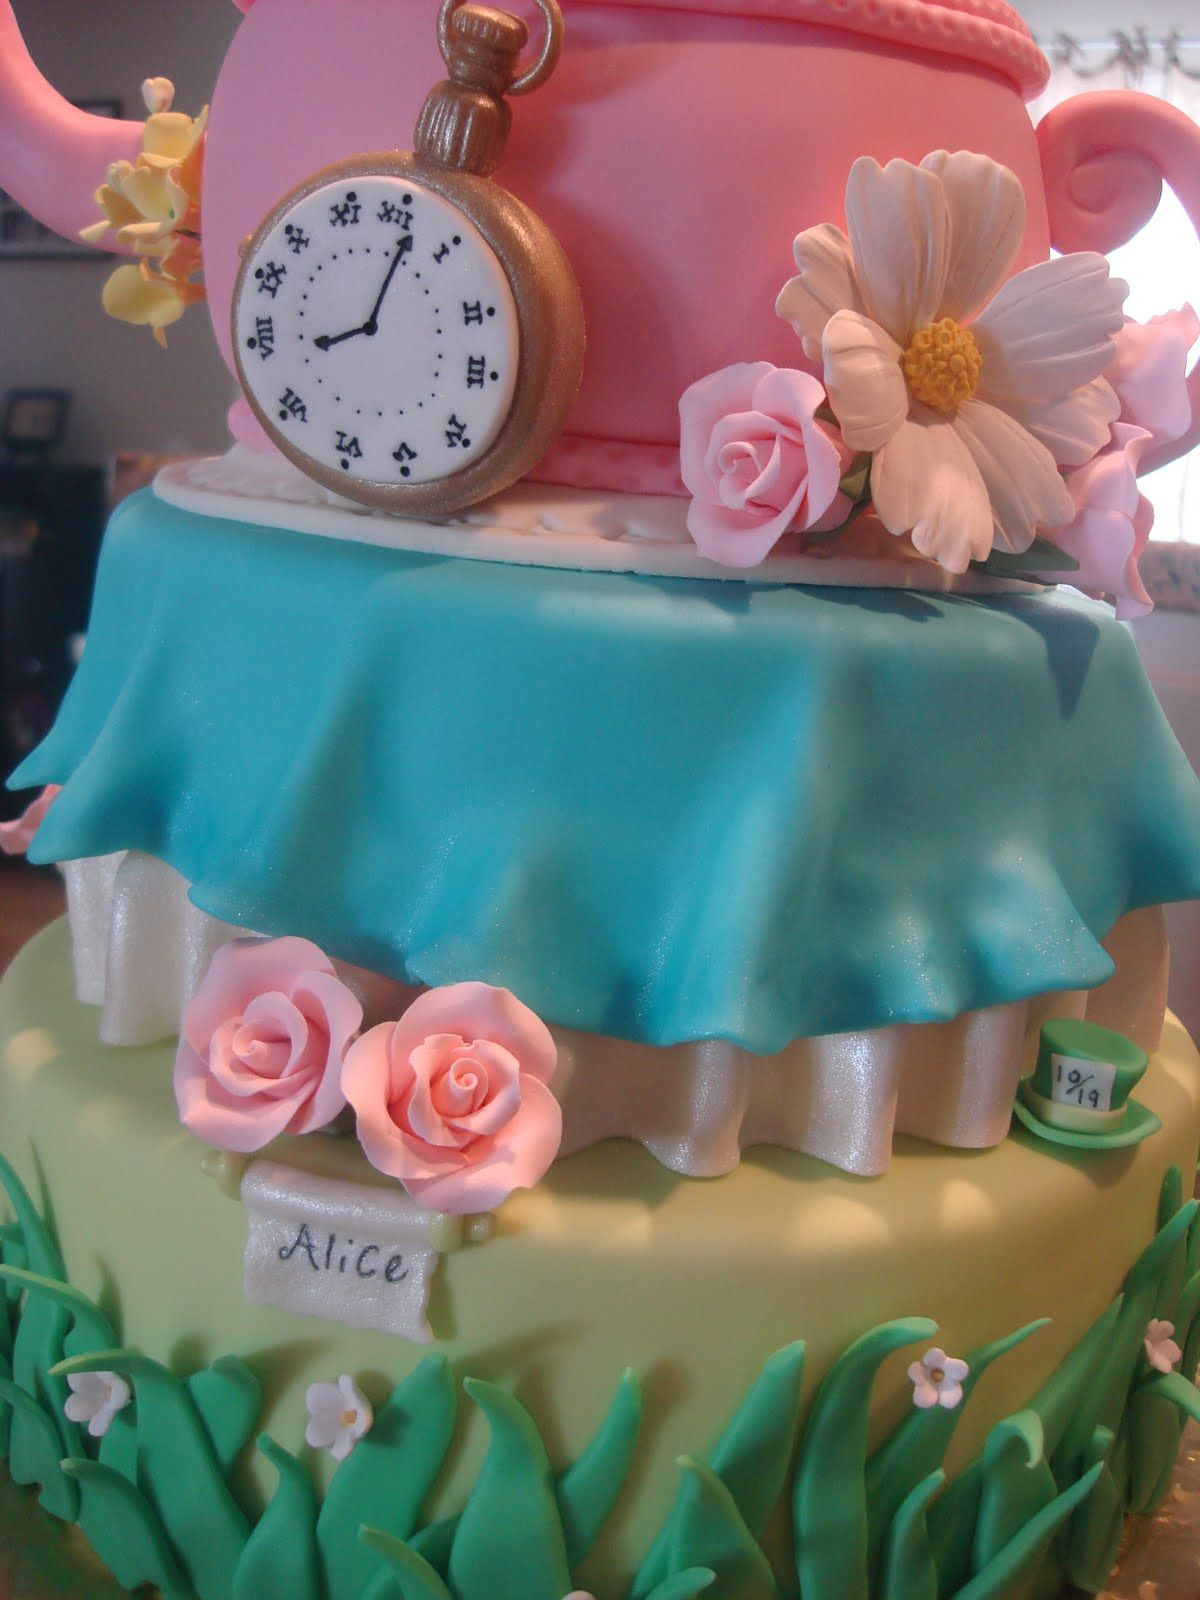 High Quality Alice In Wonderland Cakes | An Alice In Wonderland Inspired Baby Shower Cake